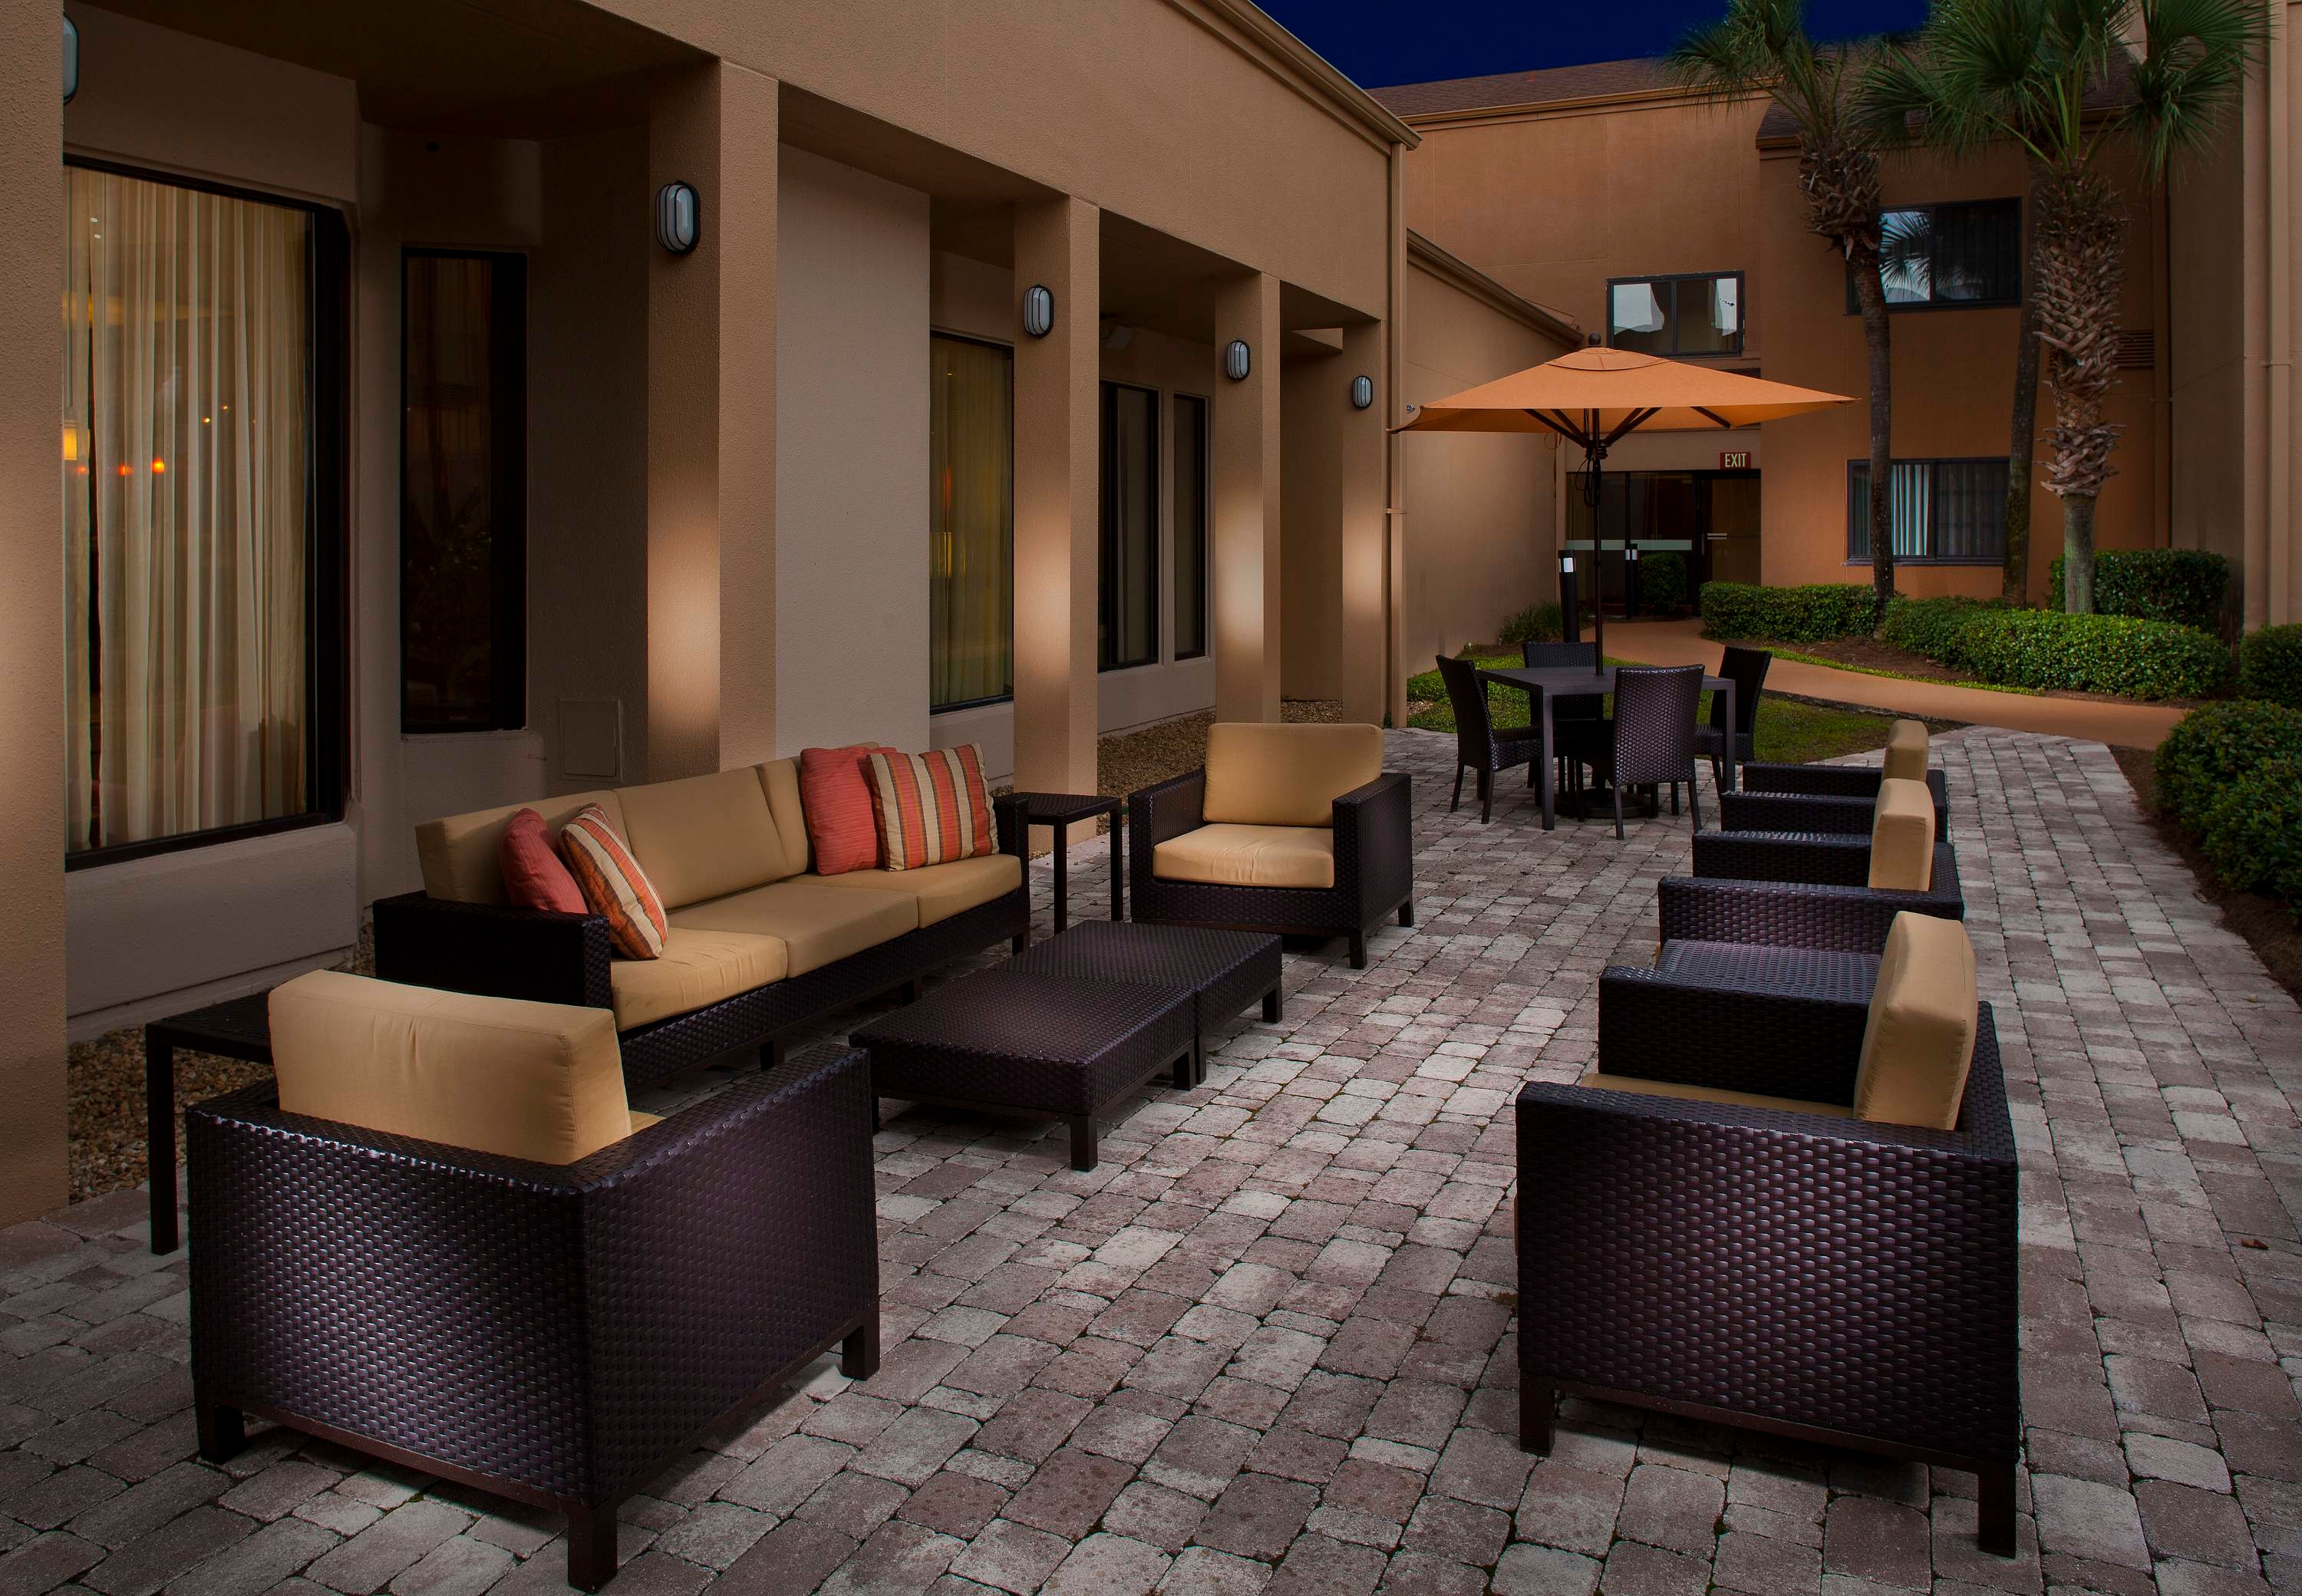 Hotel Courtyard by Marriott Tallahassee, FL - Booking.com